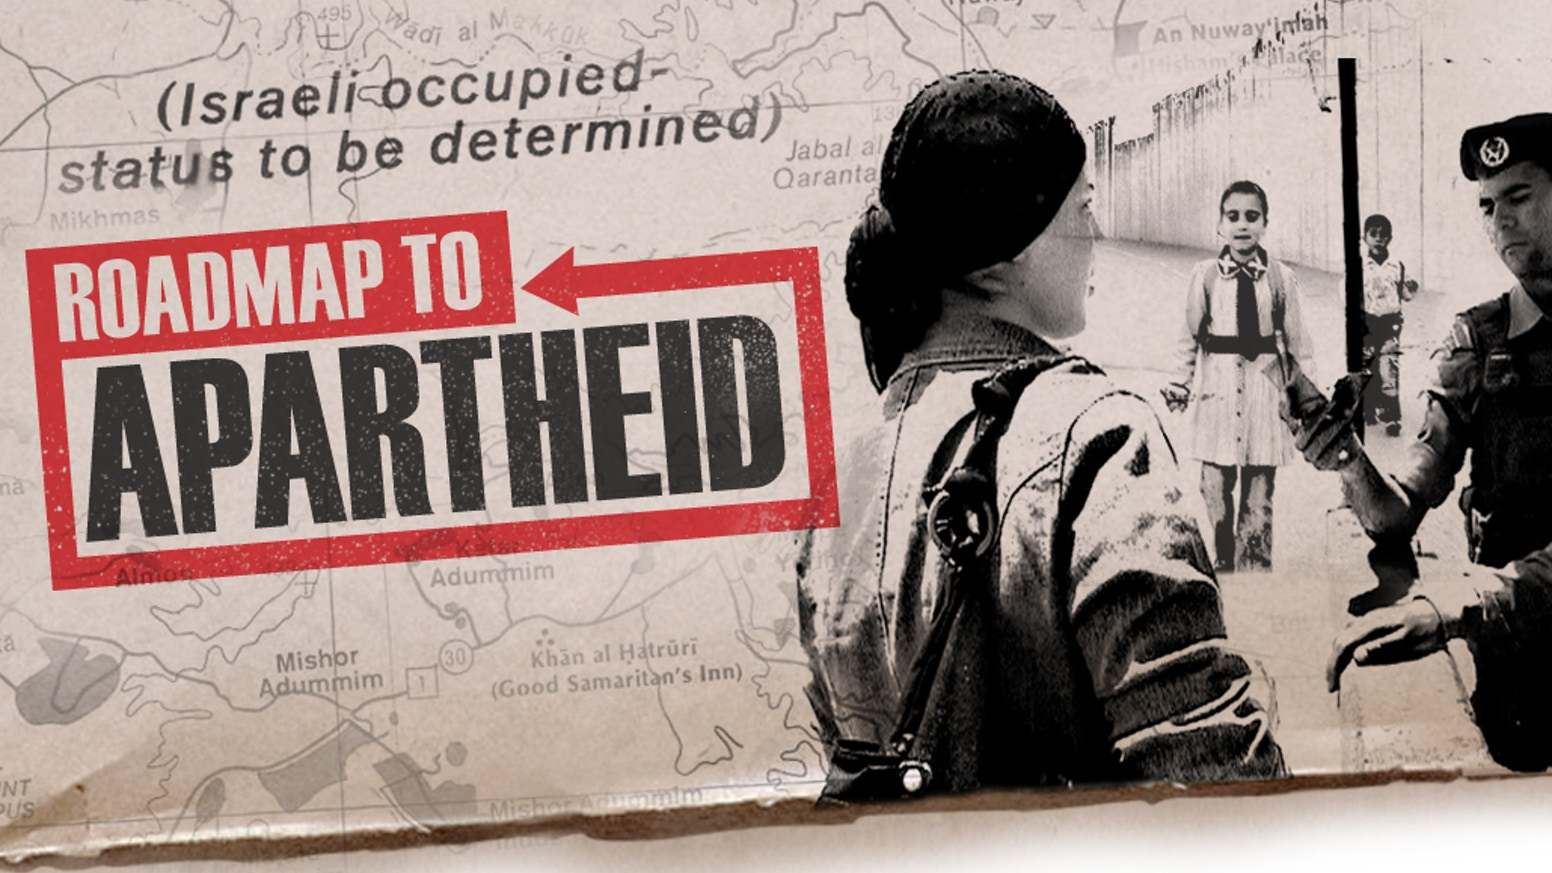 Roadmap to Apartheid 2